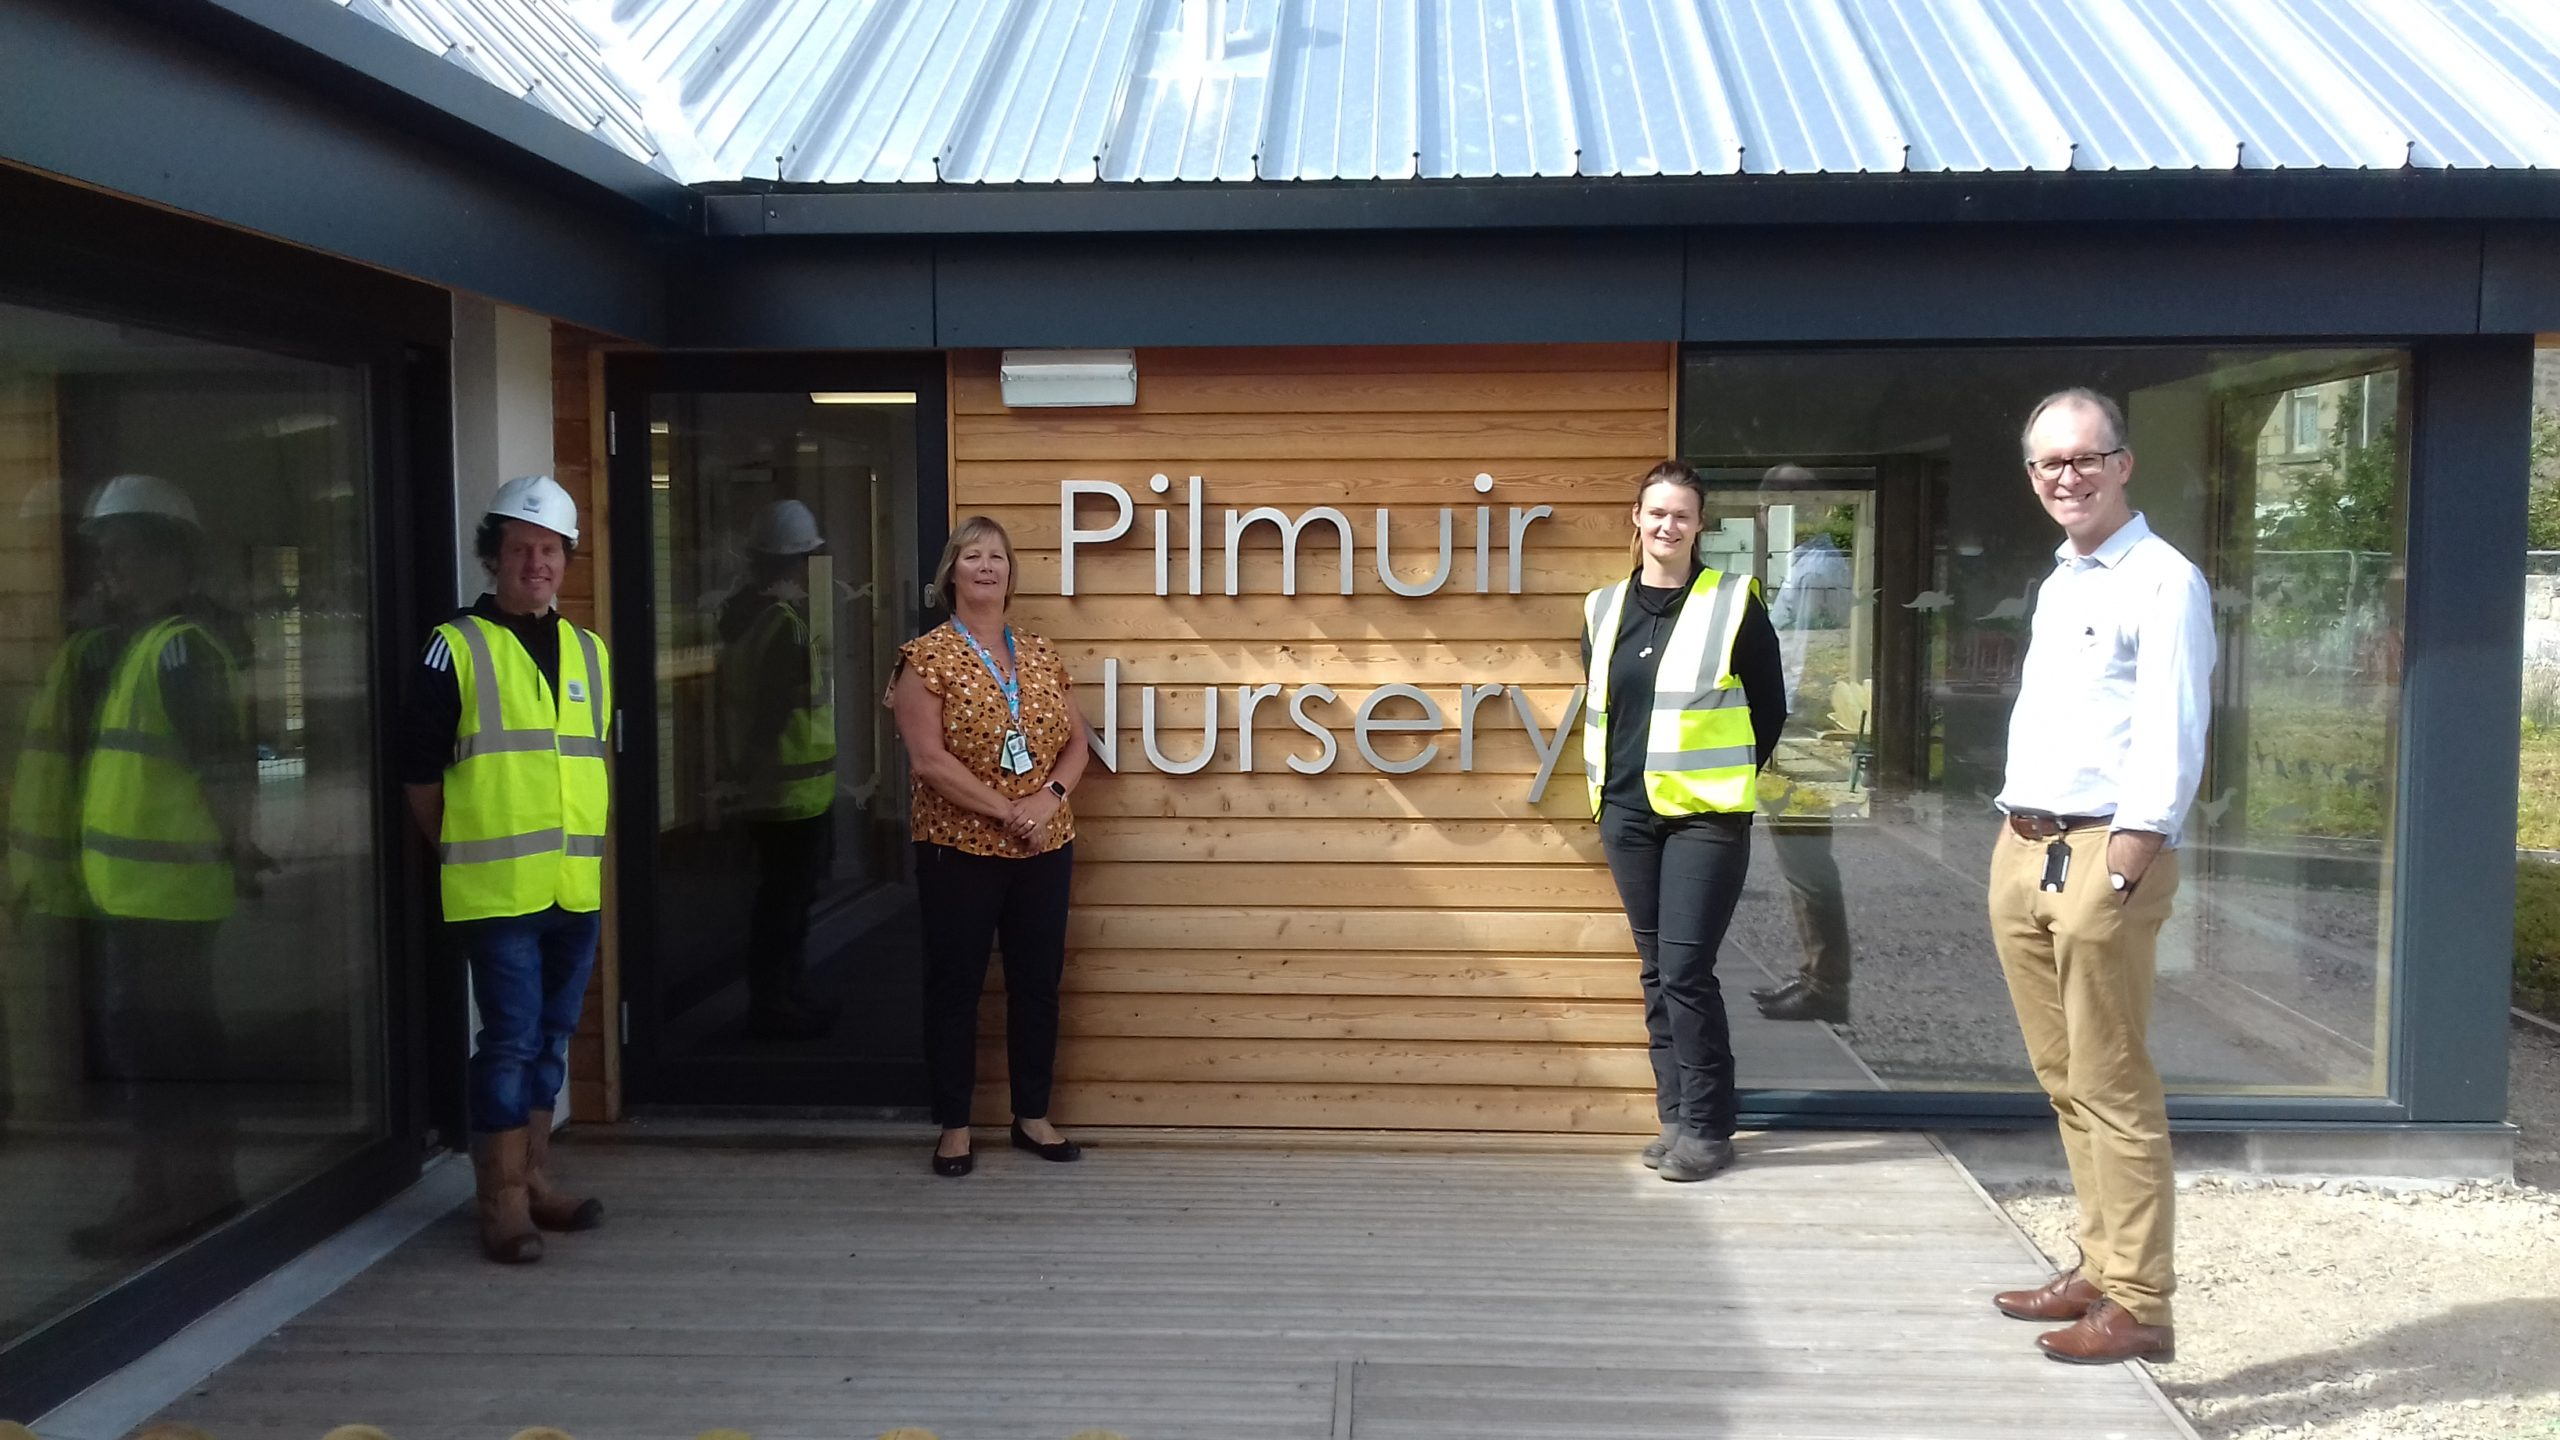 William McKay, Moray Council Architect; Bev Ashworth, Moray Council Nursery Manager; Dawn Marshall, Morrison Construction Site Manager; Robin Paterson, Senior Project Manager ELC Expansion at the new nursery.